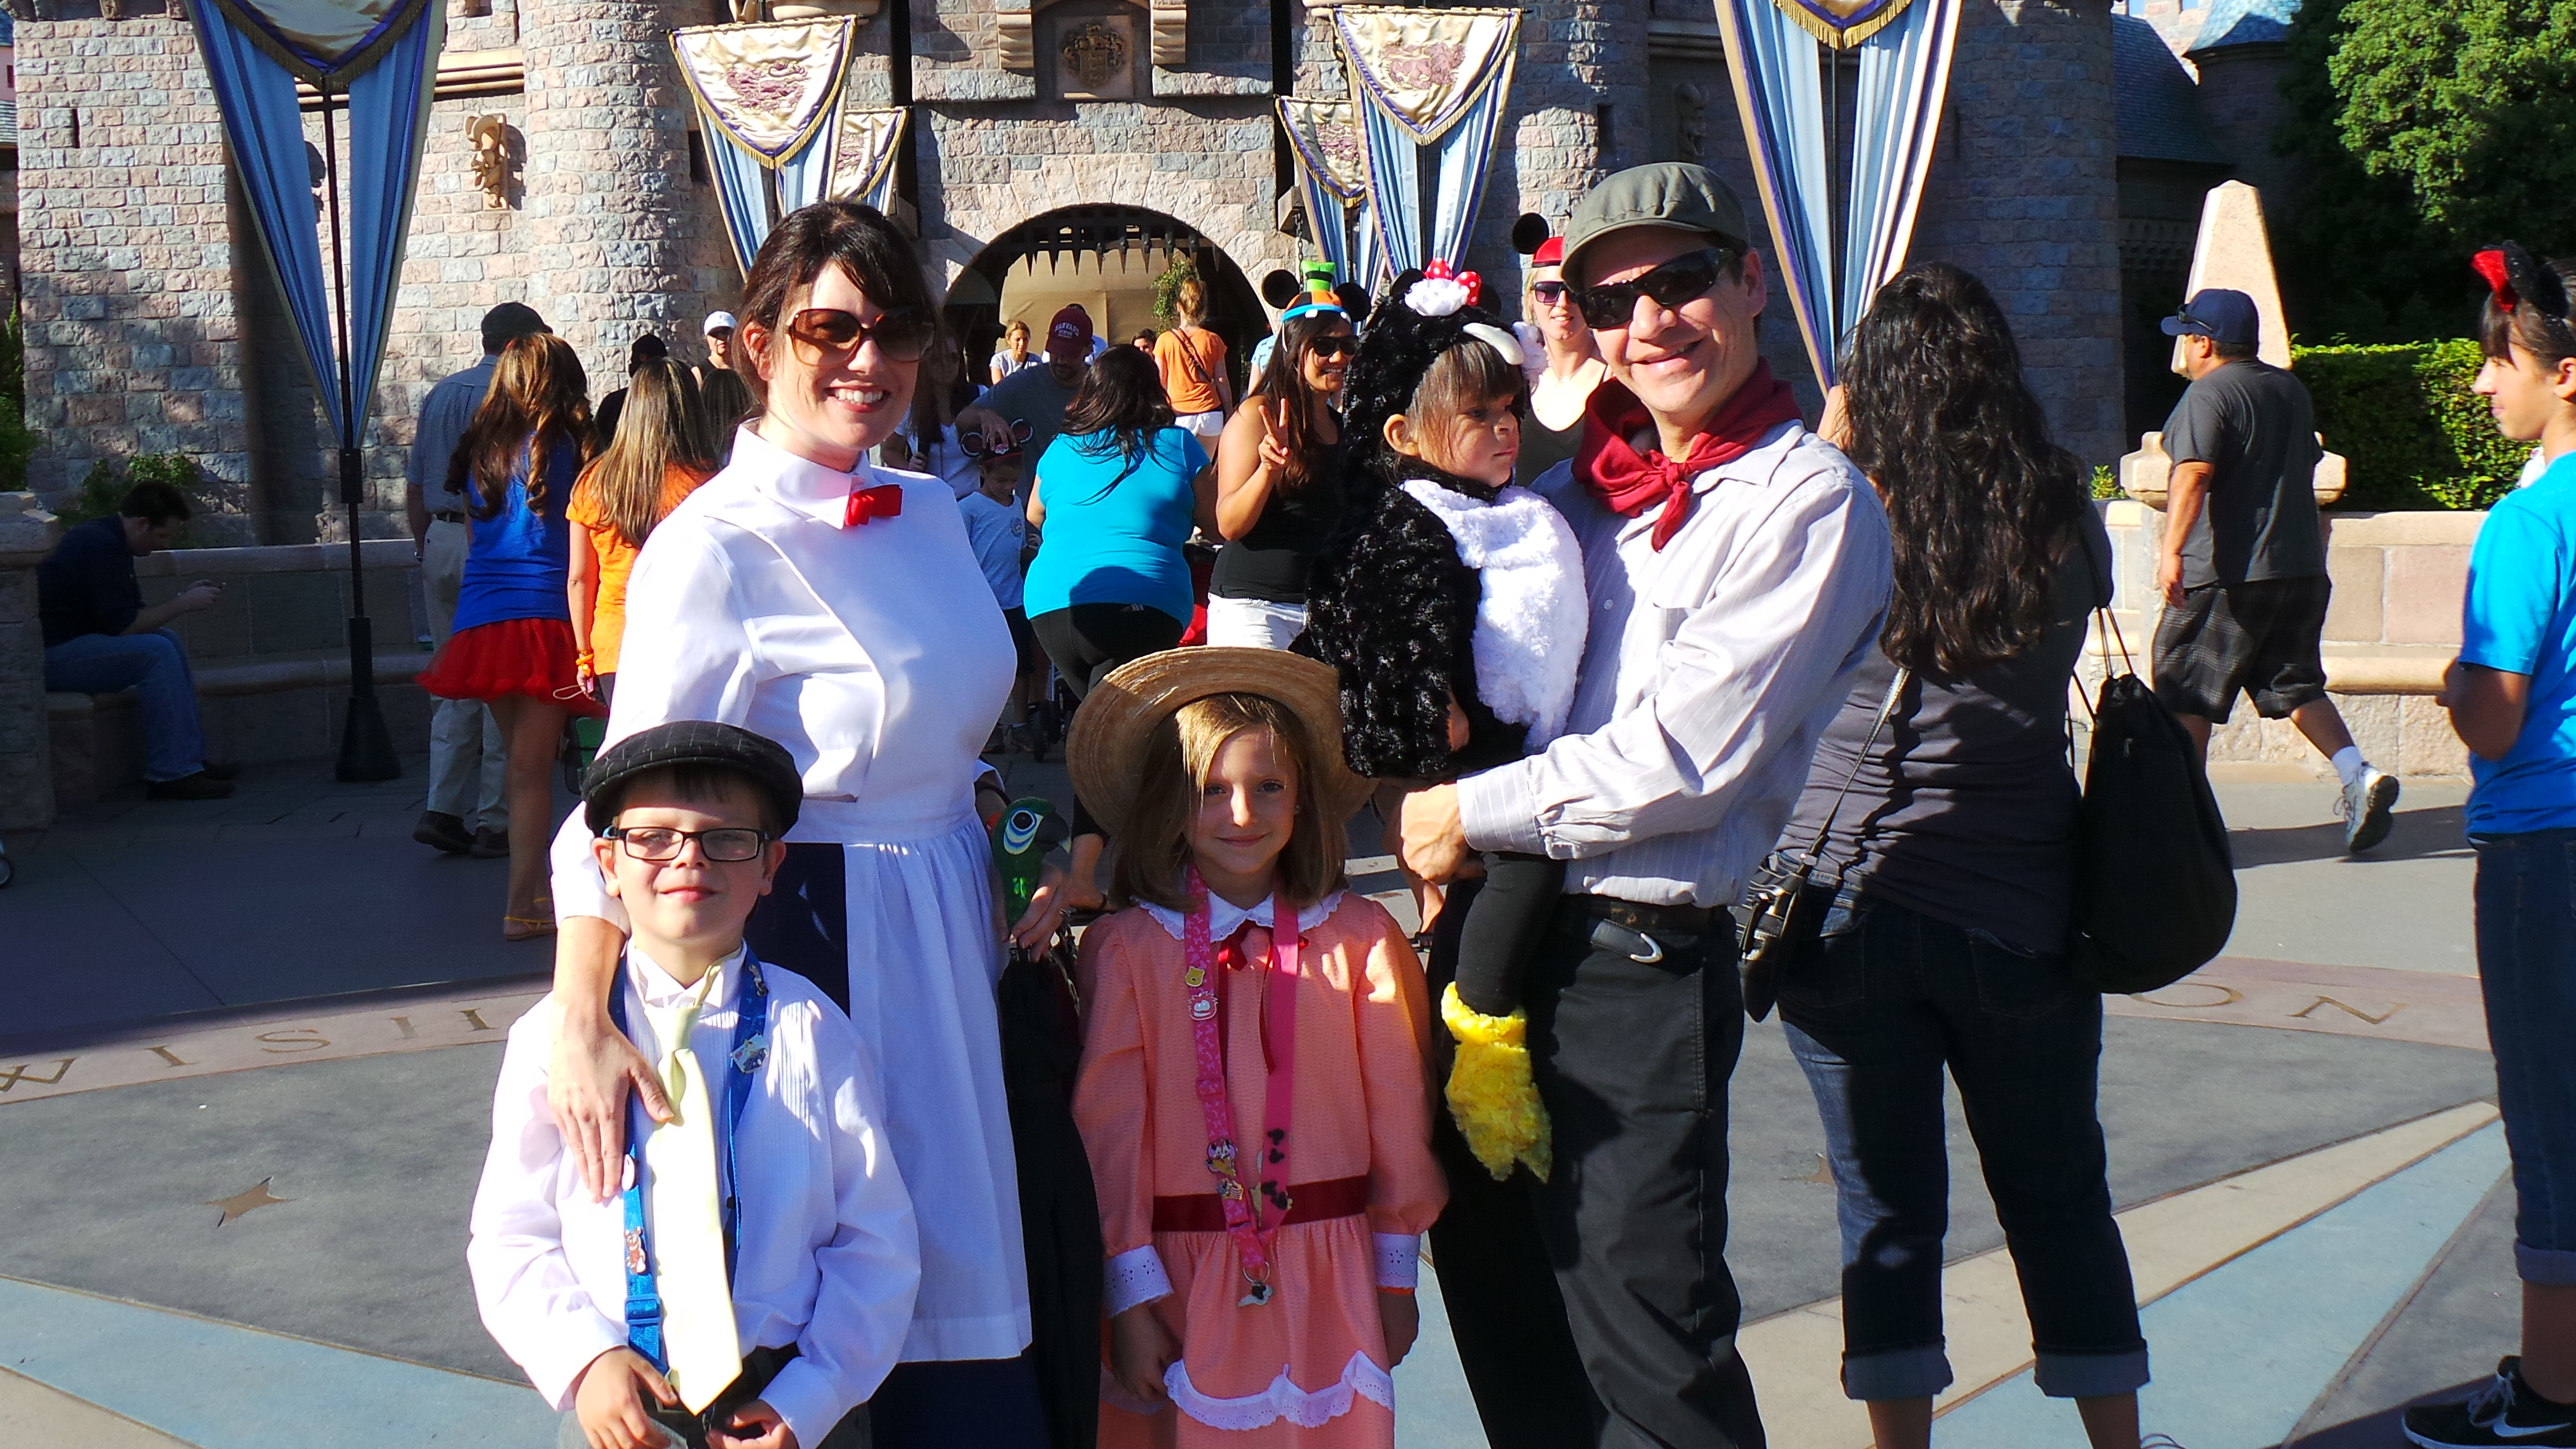 Jane Banks and Mary Poppins Cast Disneyland